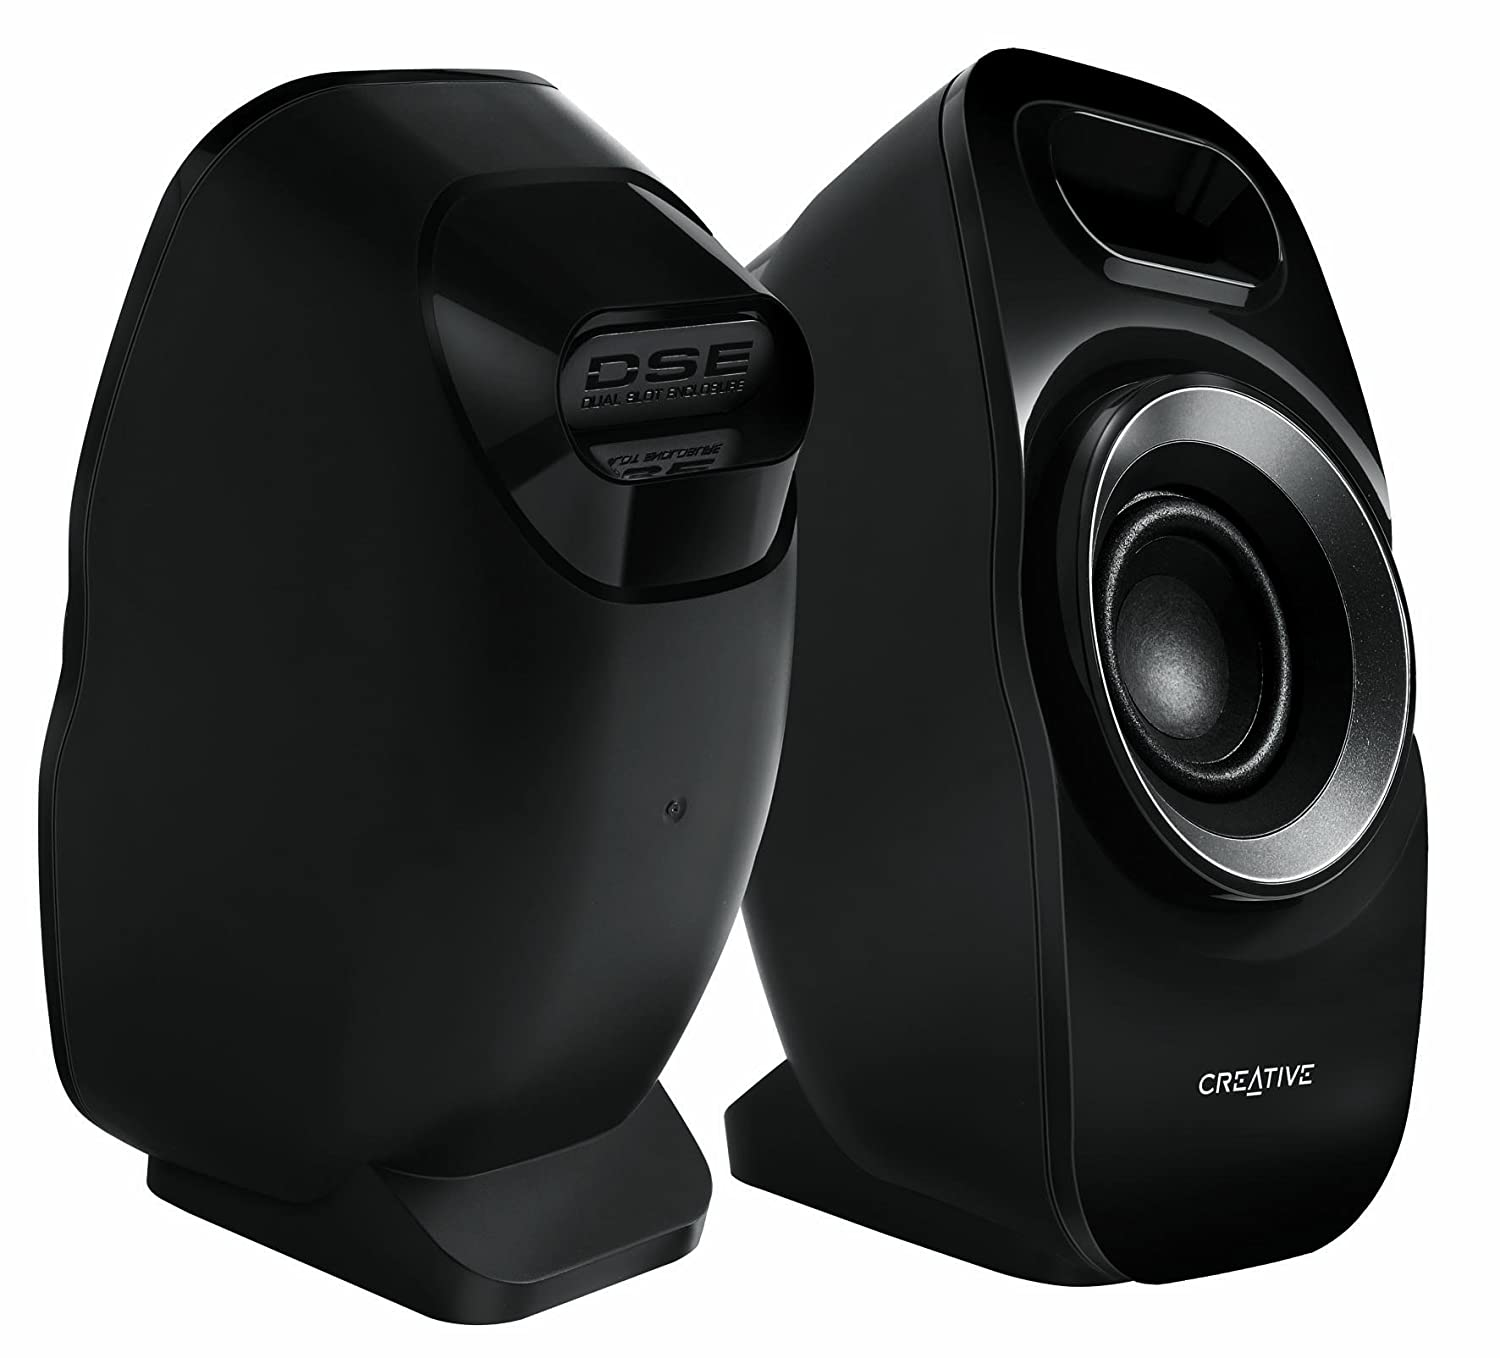 Amazon.com: Creative Inspire T6300 51MF4115AA002 5.1 Channel 22 Watt  Subwoofer Speaker System : Computers & Accessories